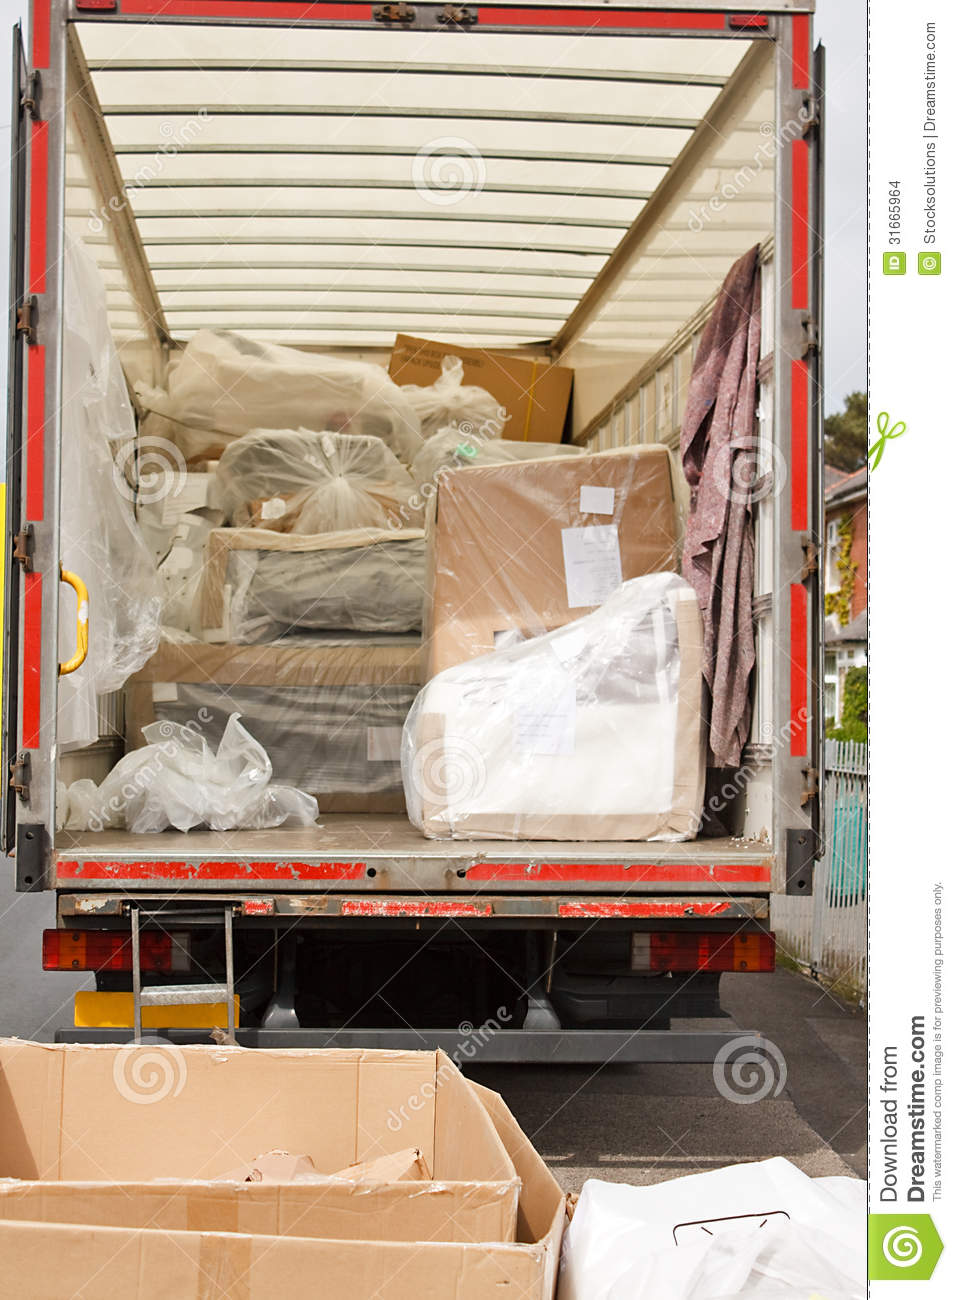 http://thumbs.dreamstime.com/z/removals-van-truck-plastic-wrapped-furniture-loaded-back-moving-house-31665964.jpg